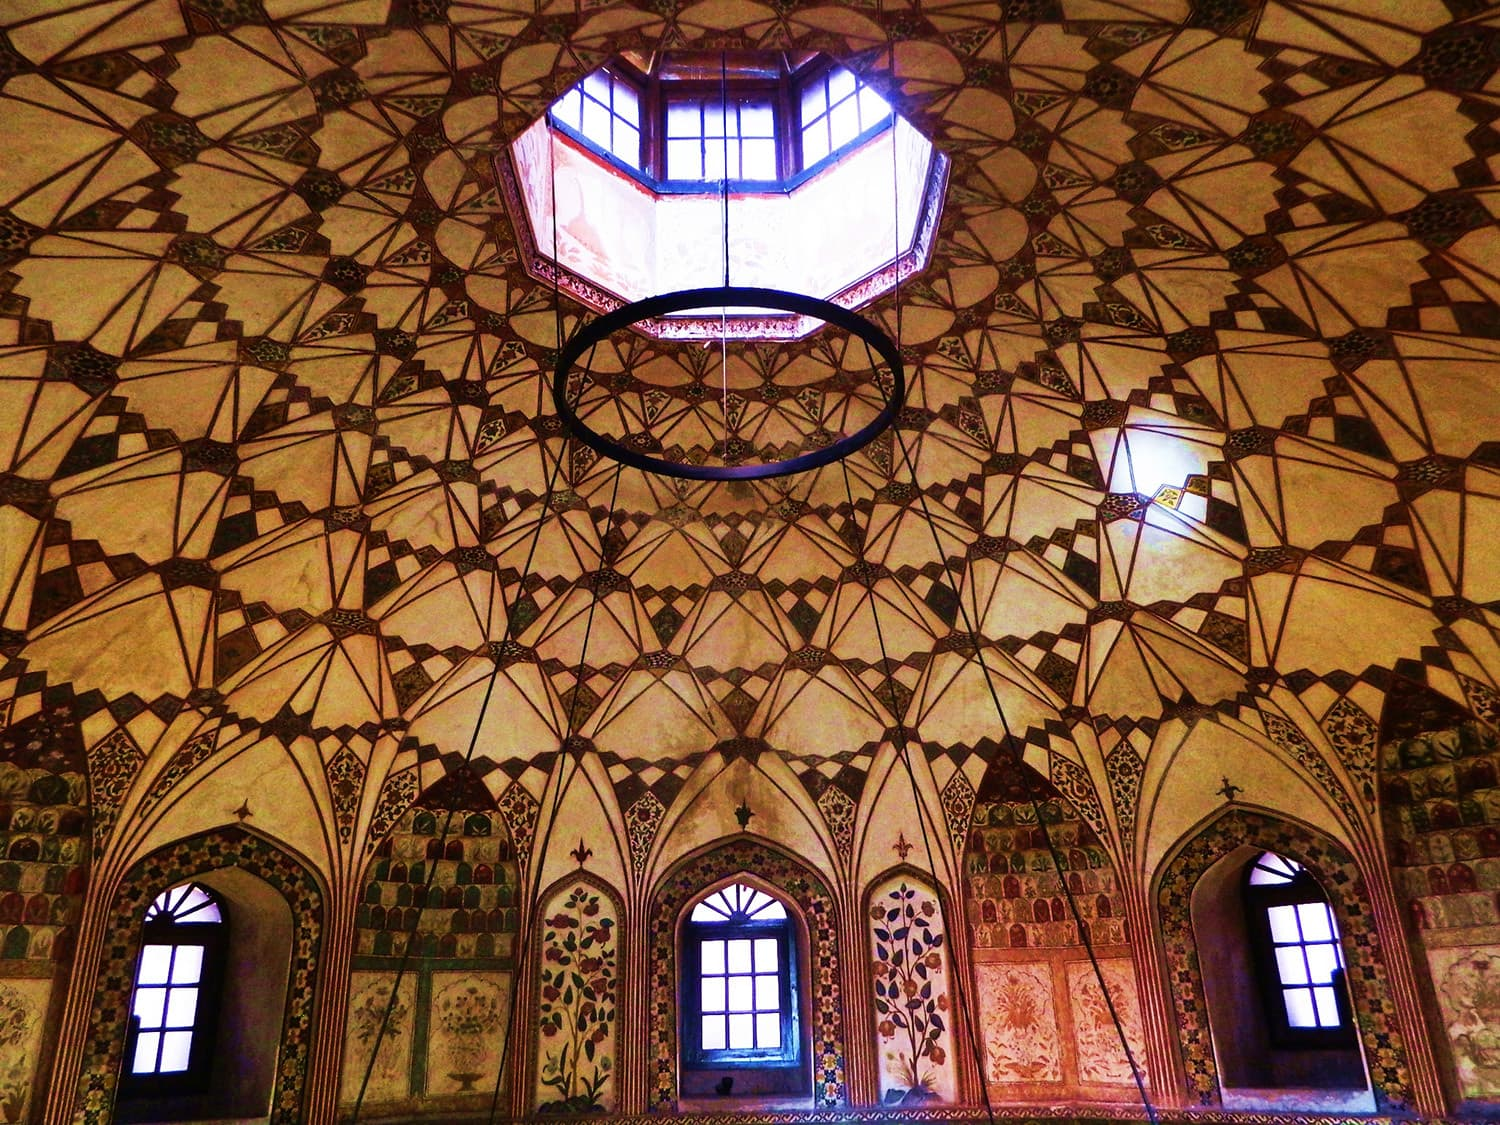 The Shahi Hammam is a union of mathematics and art. Photo: Ibnazhar/Wikimedia Commons.